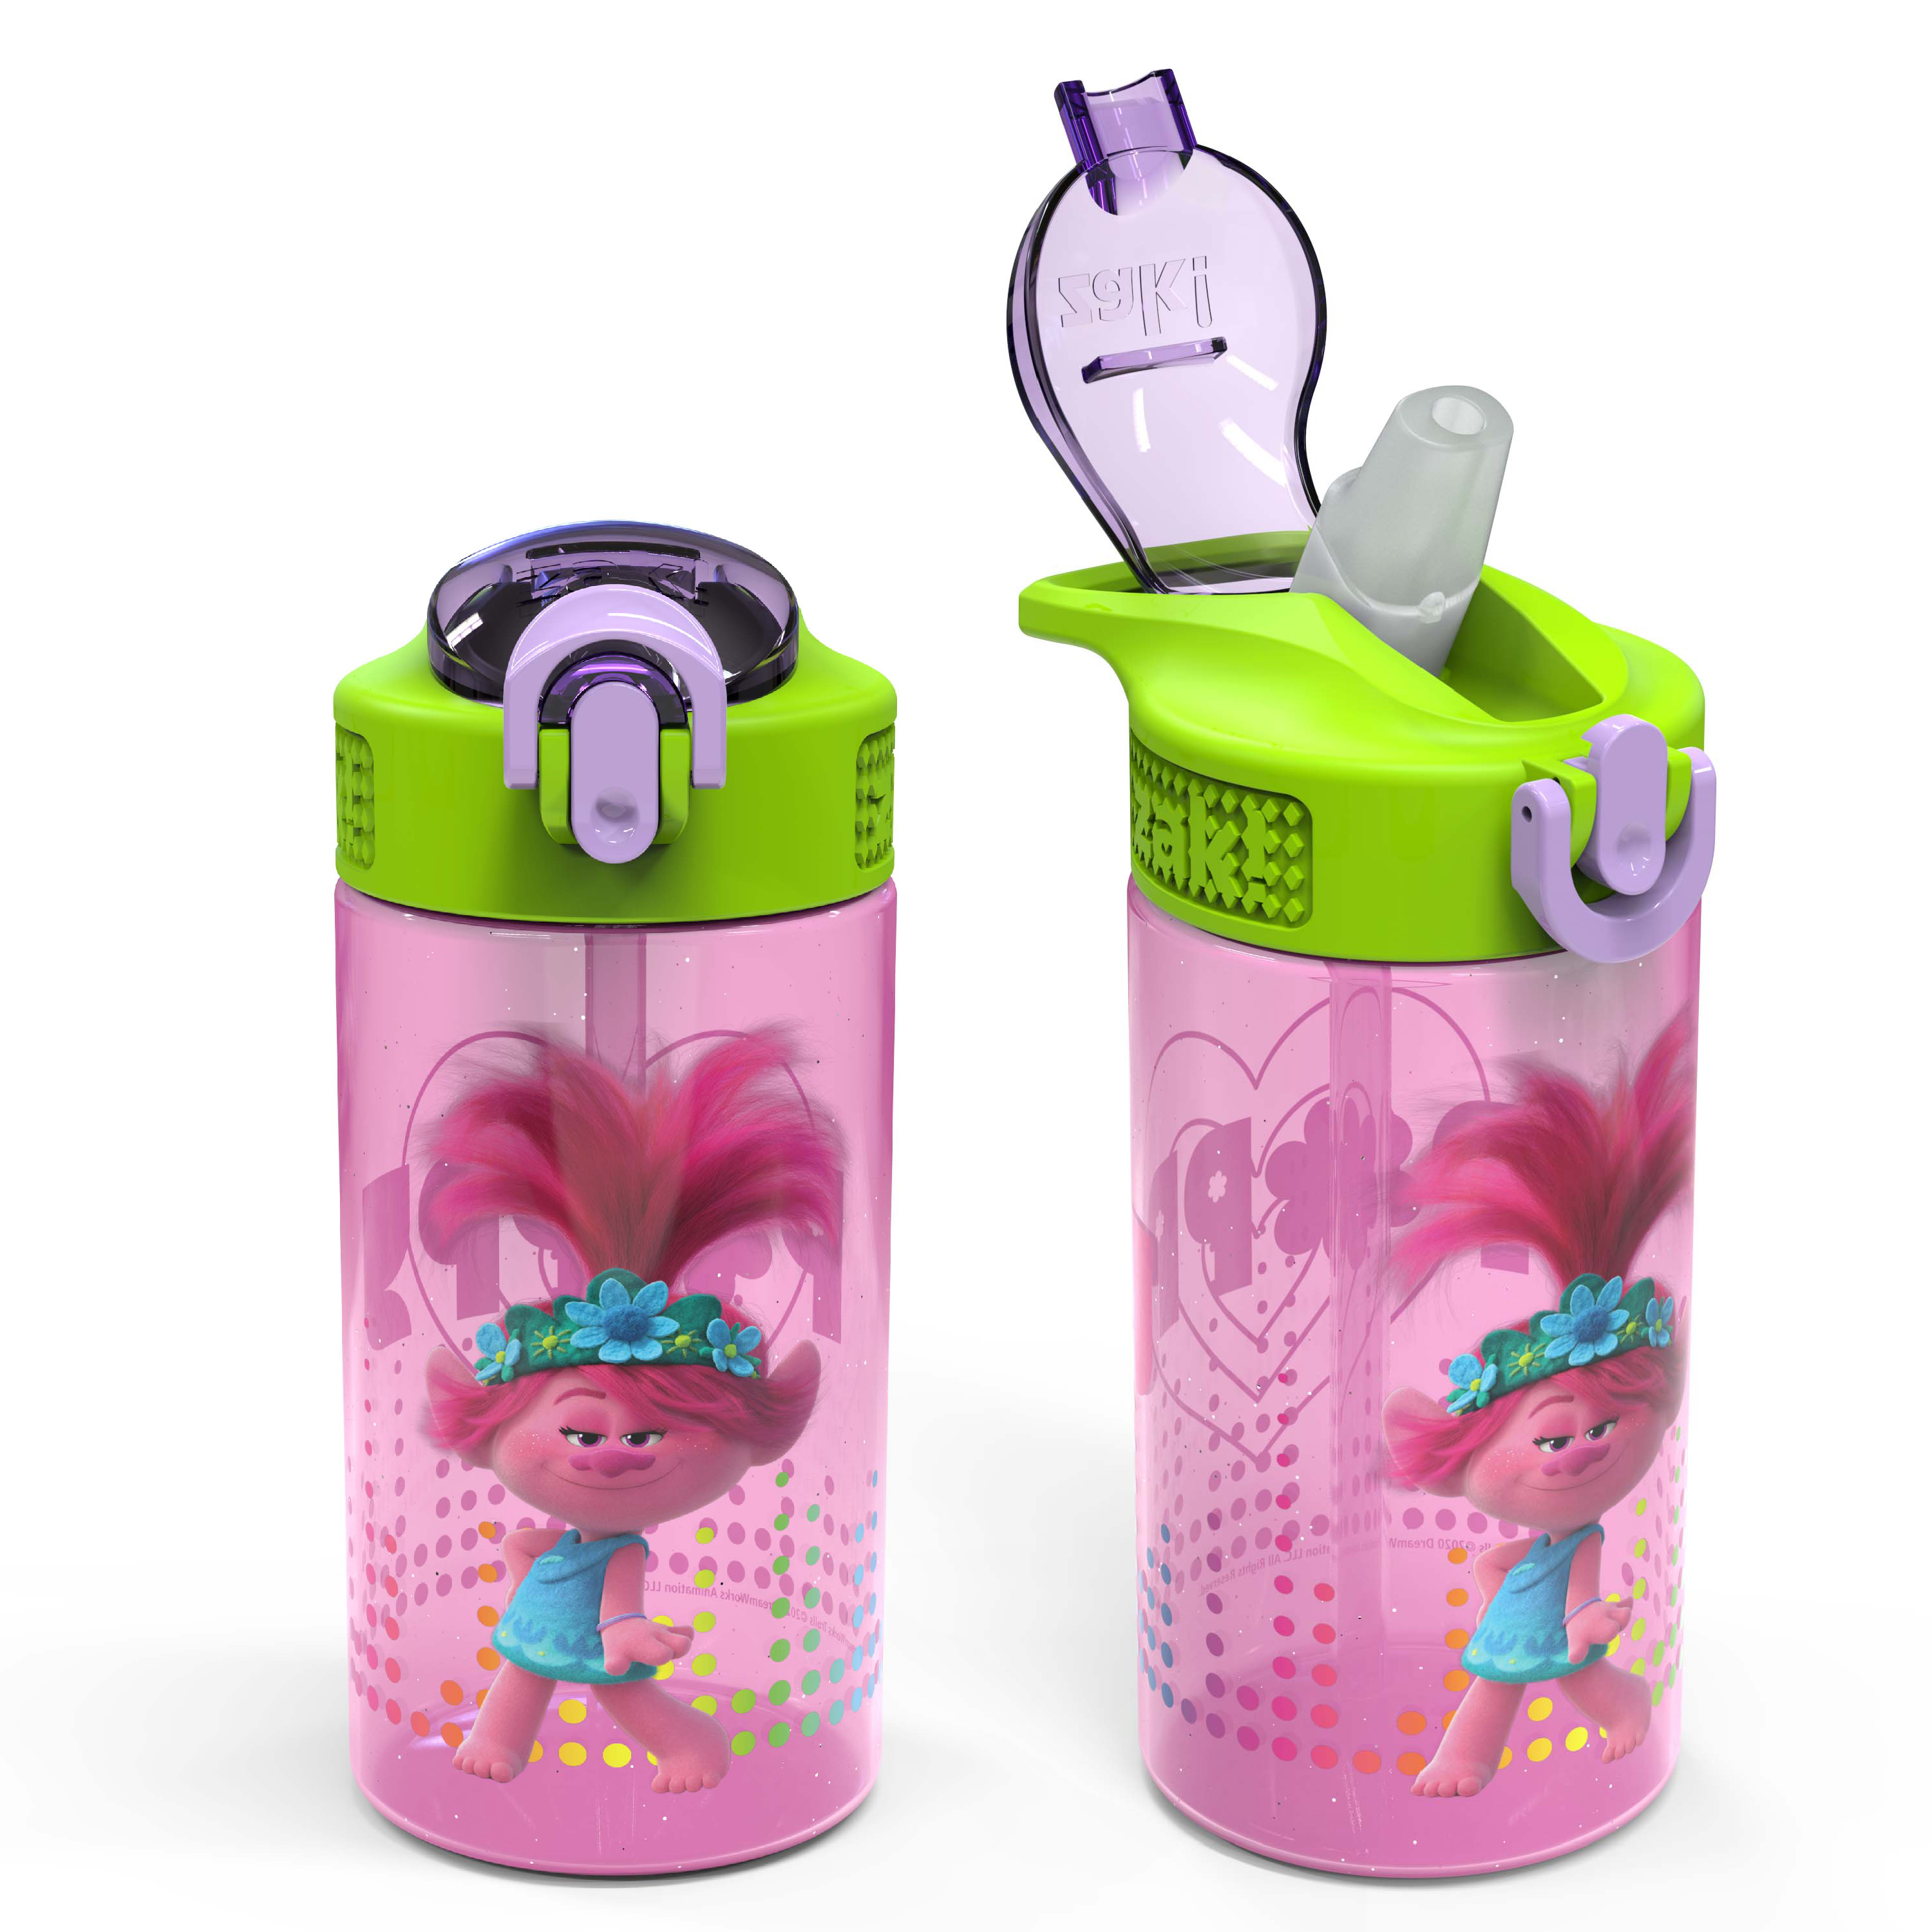 Trolls 2 Movie 16 ounce Reusable Plastic Water Bottle with Straw, Poppy, 2-piece set slideshow image 1